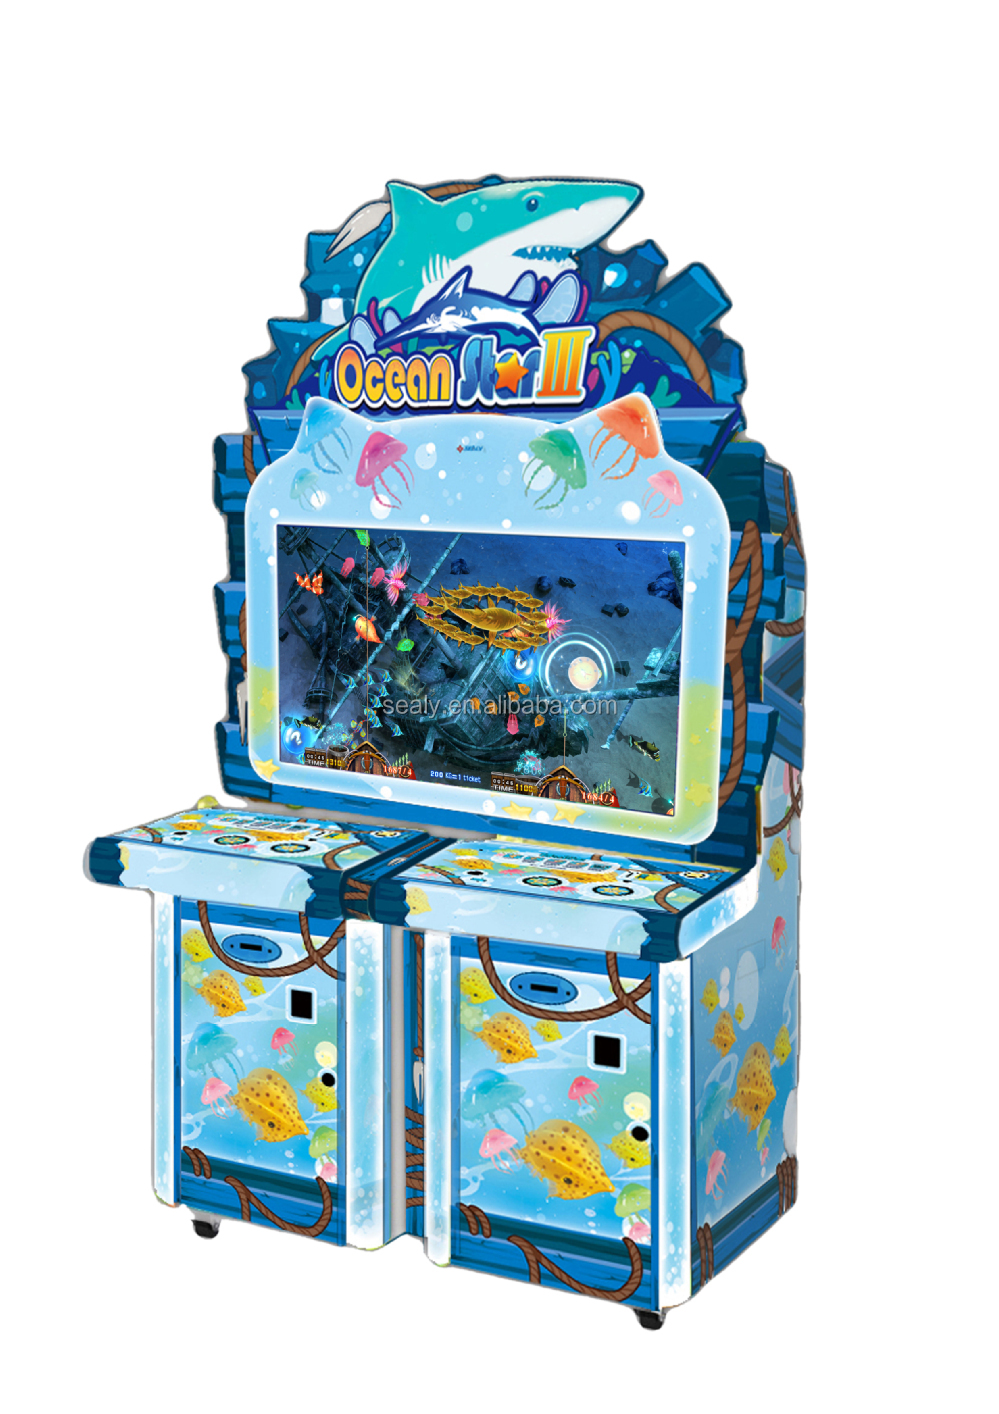 2 MONTH EARN COST!!! Gaming Slot Ocean King 2 Fishing Game Machine sale Fishing fork master